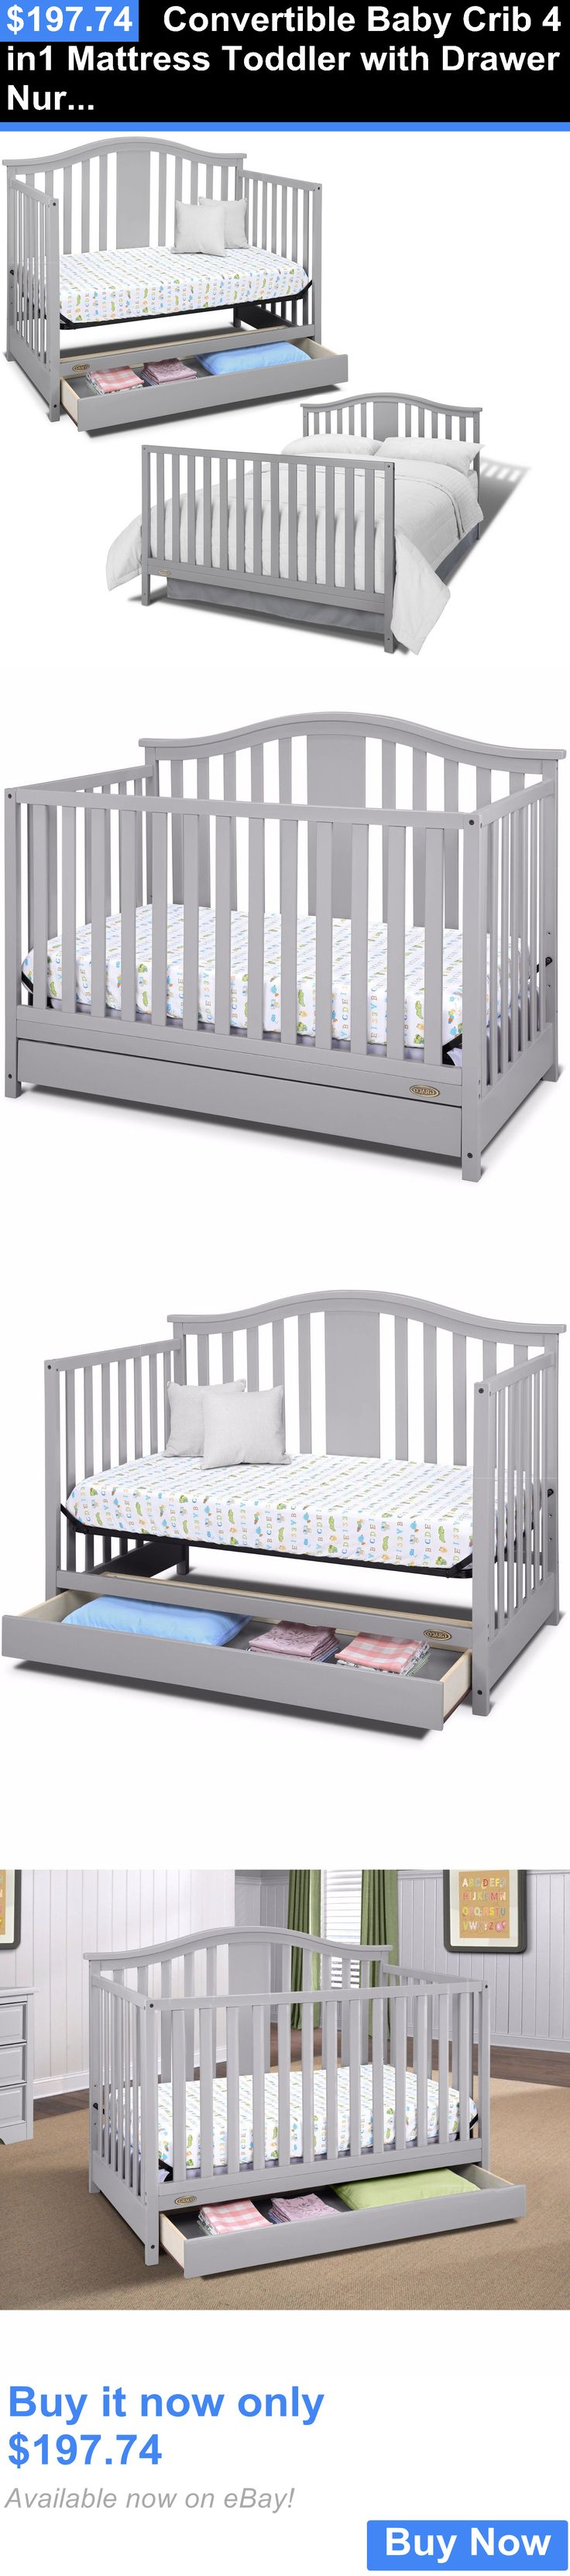 Baby bed ebay india - Baby Nursery Convertible Baby Crib 4 In1 Mattress Toddler With Drawer Nursery Bed Pebble Gray